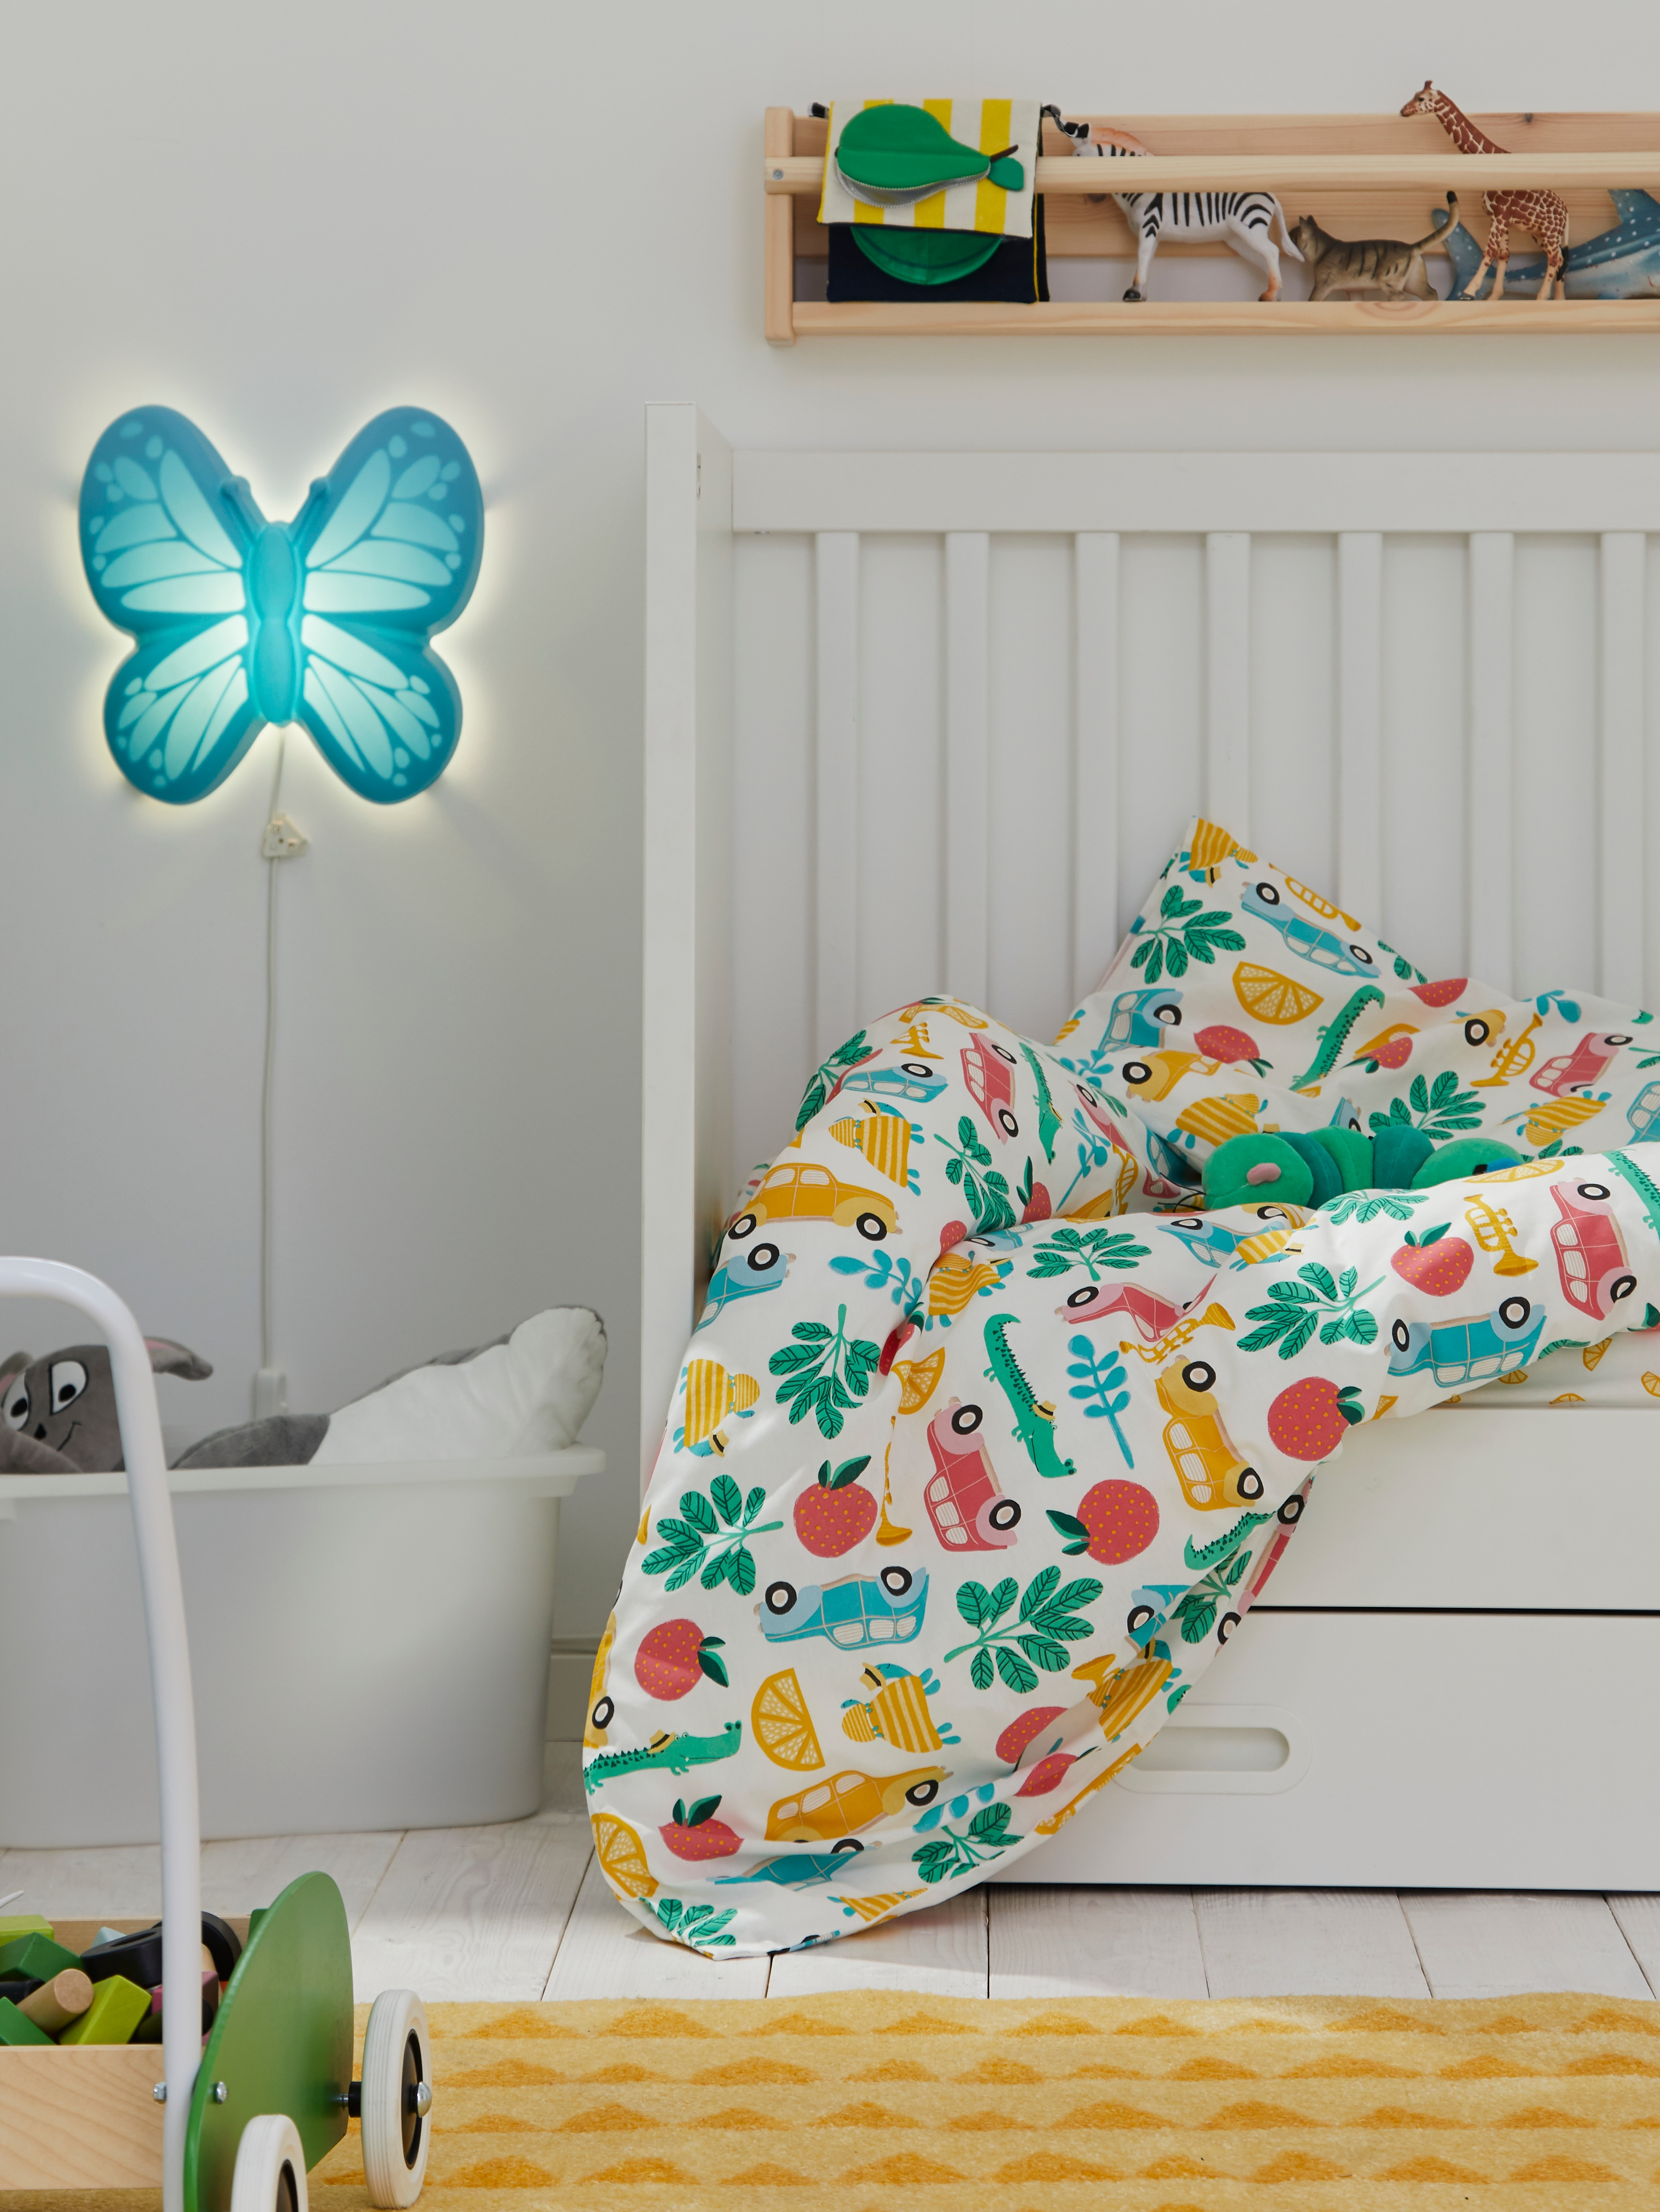 A STUVA/FRITIDS cot with drawers covered in multicolour RÖRANDE bed linen. A blue UPPLYST light is on the wall next to it.